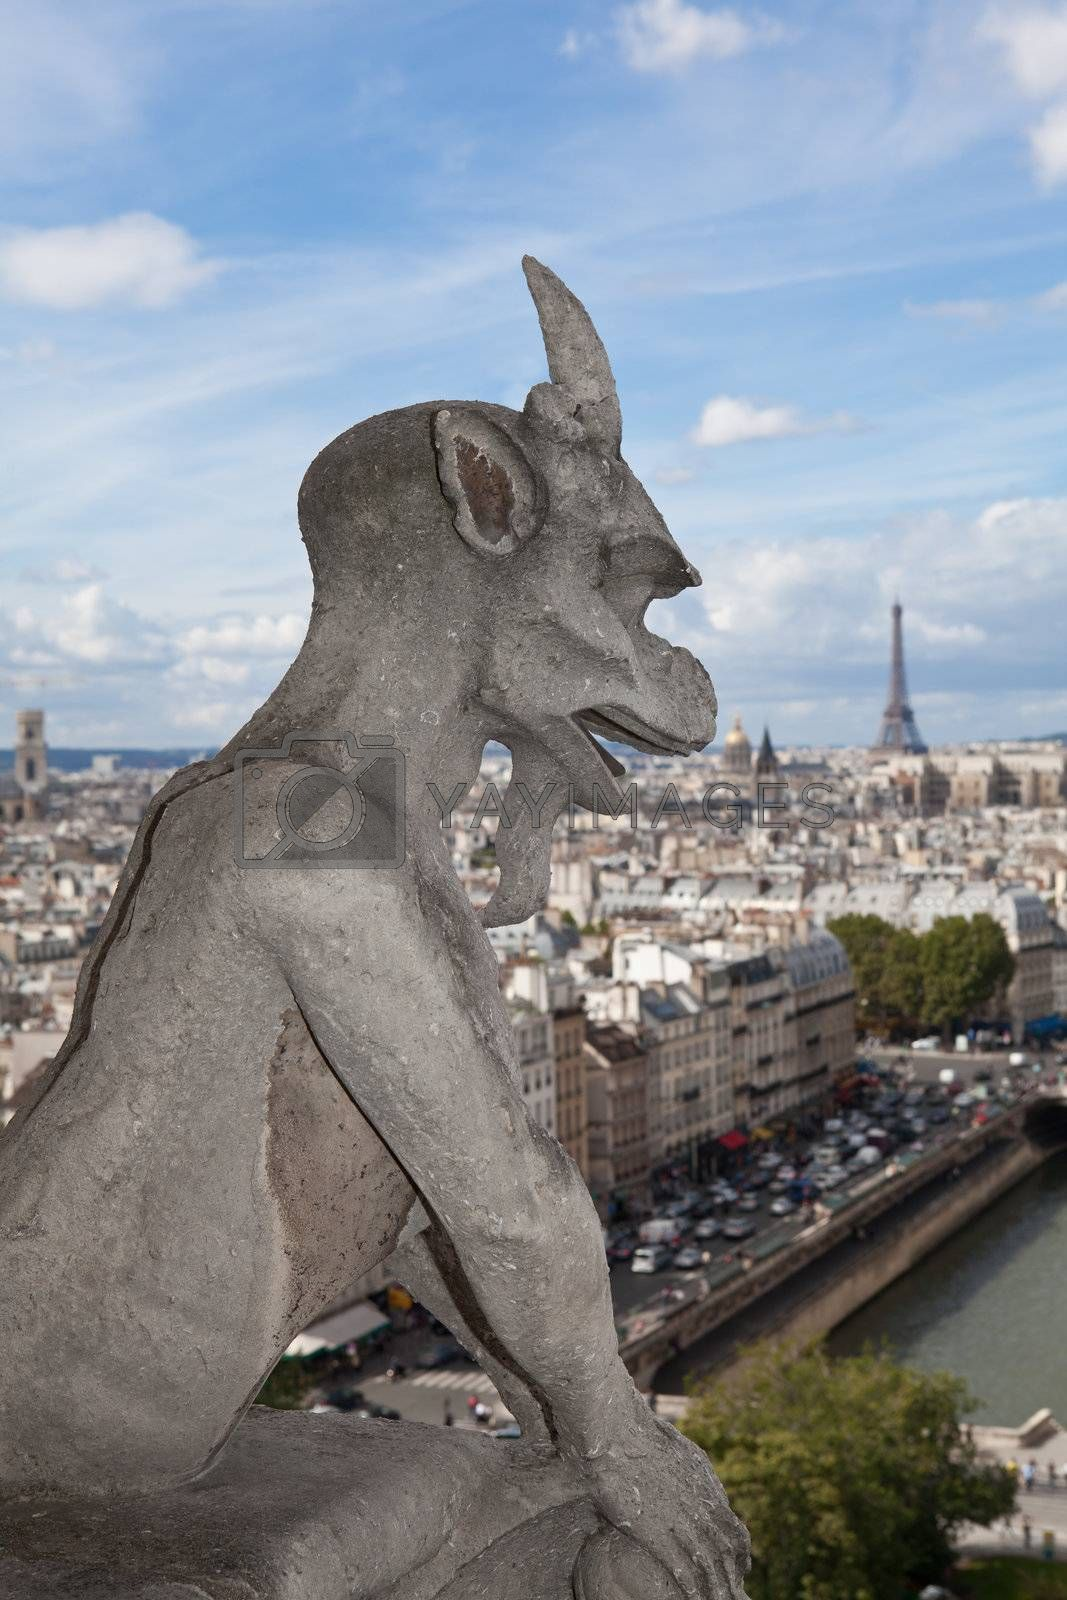 Gargoyle Statue cathedral Notre Dame, top view on tower Eiffel by SergeyAK